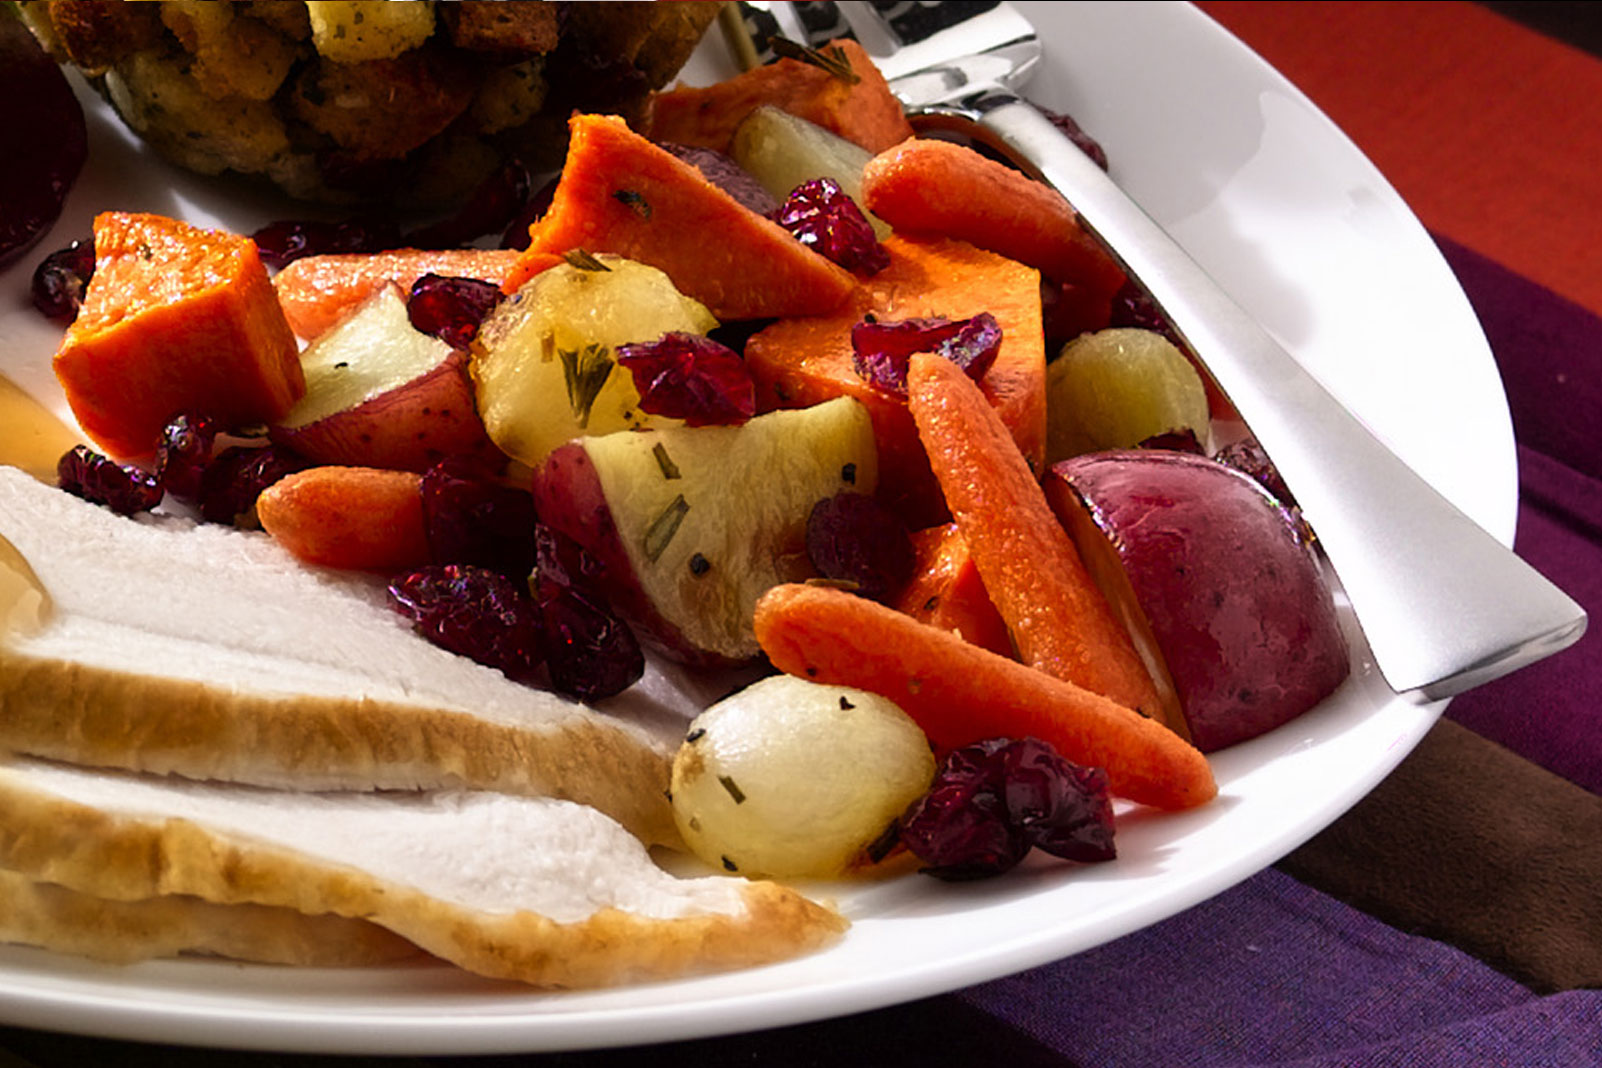 Roasted Winter Vegetables with Craisins® Dried Cranberries